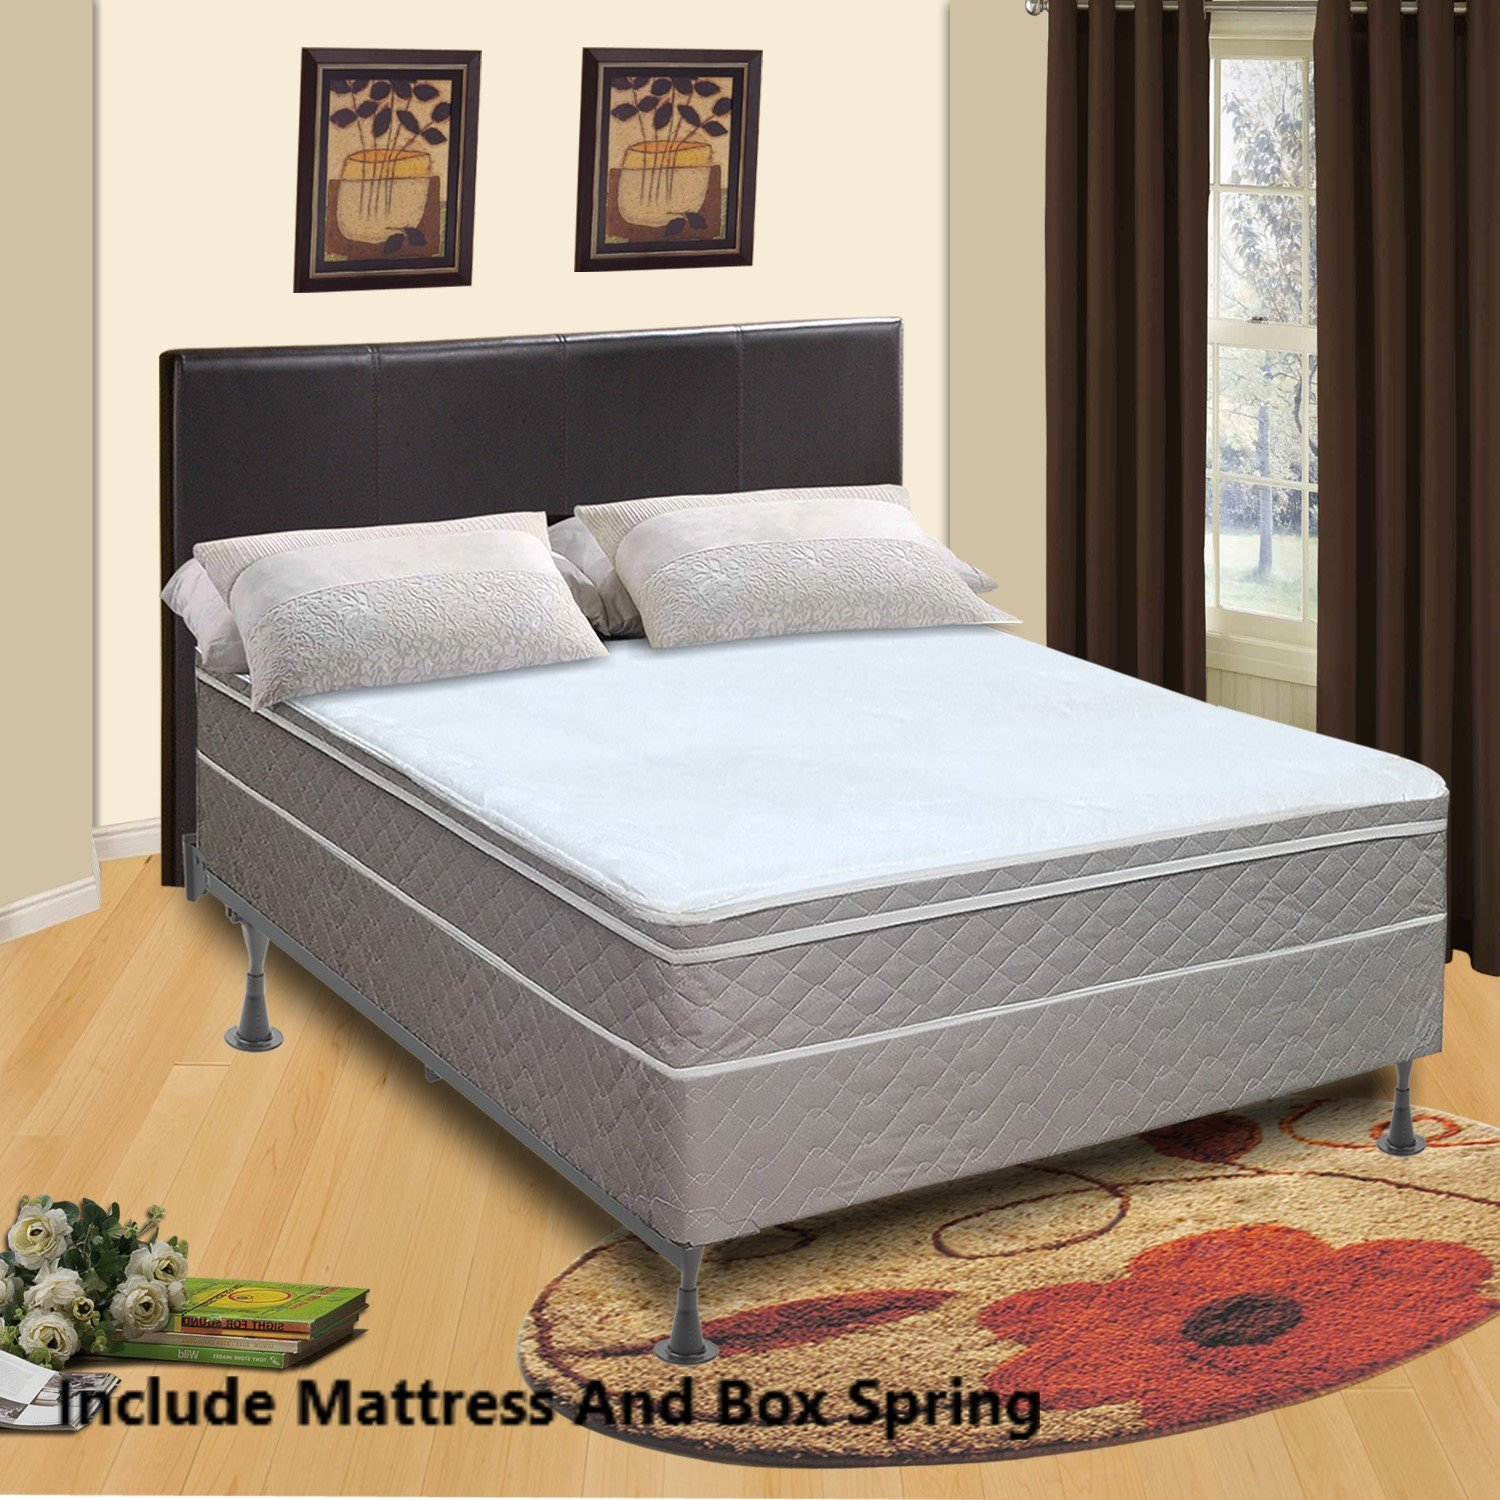 Mattress Comfort 440z-3/3XL-2 10-Inch Fully Assembled Orthopedic Back Support Plush Mattress and 8'' Box Spring/Foundation Set, Tomorrow Dream Collection, Beige Color, Twin XL